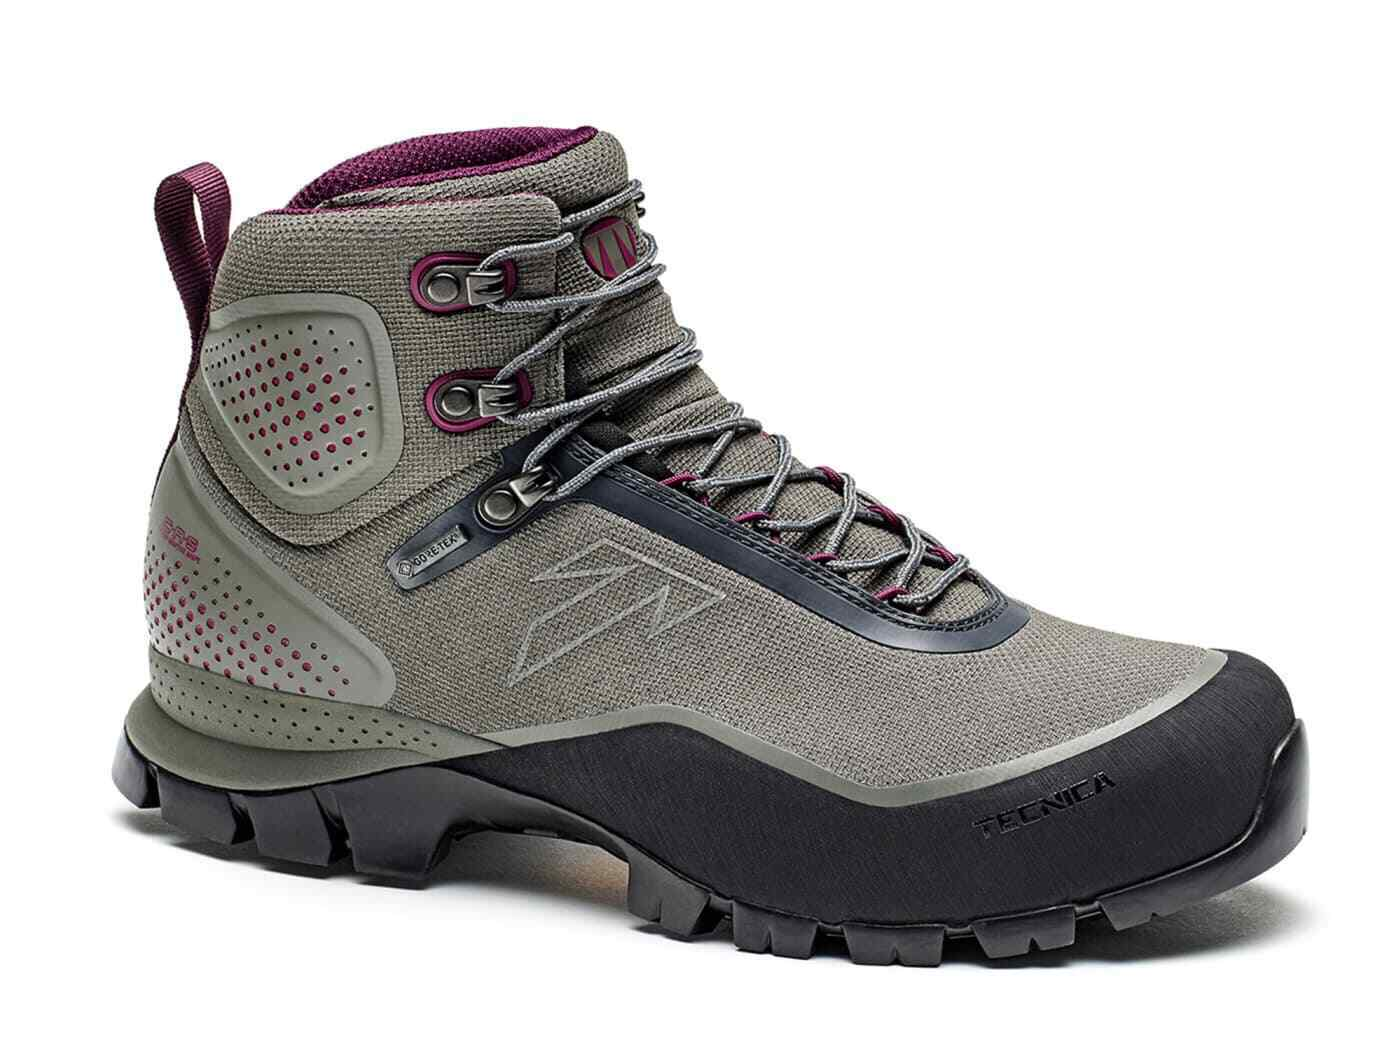 Women's shoes Trekking Hiking tecnica Forge S  GTX Ws  order now with big discount & free delivery